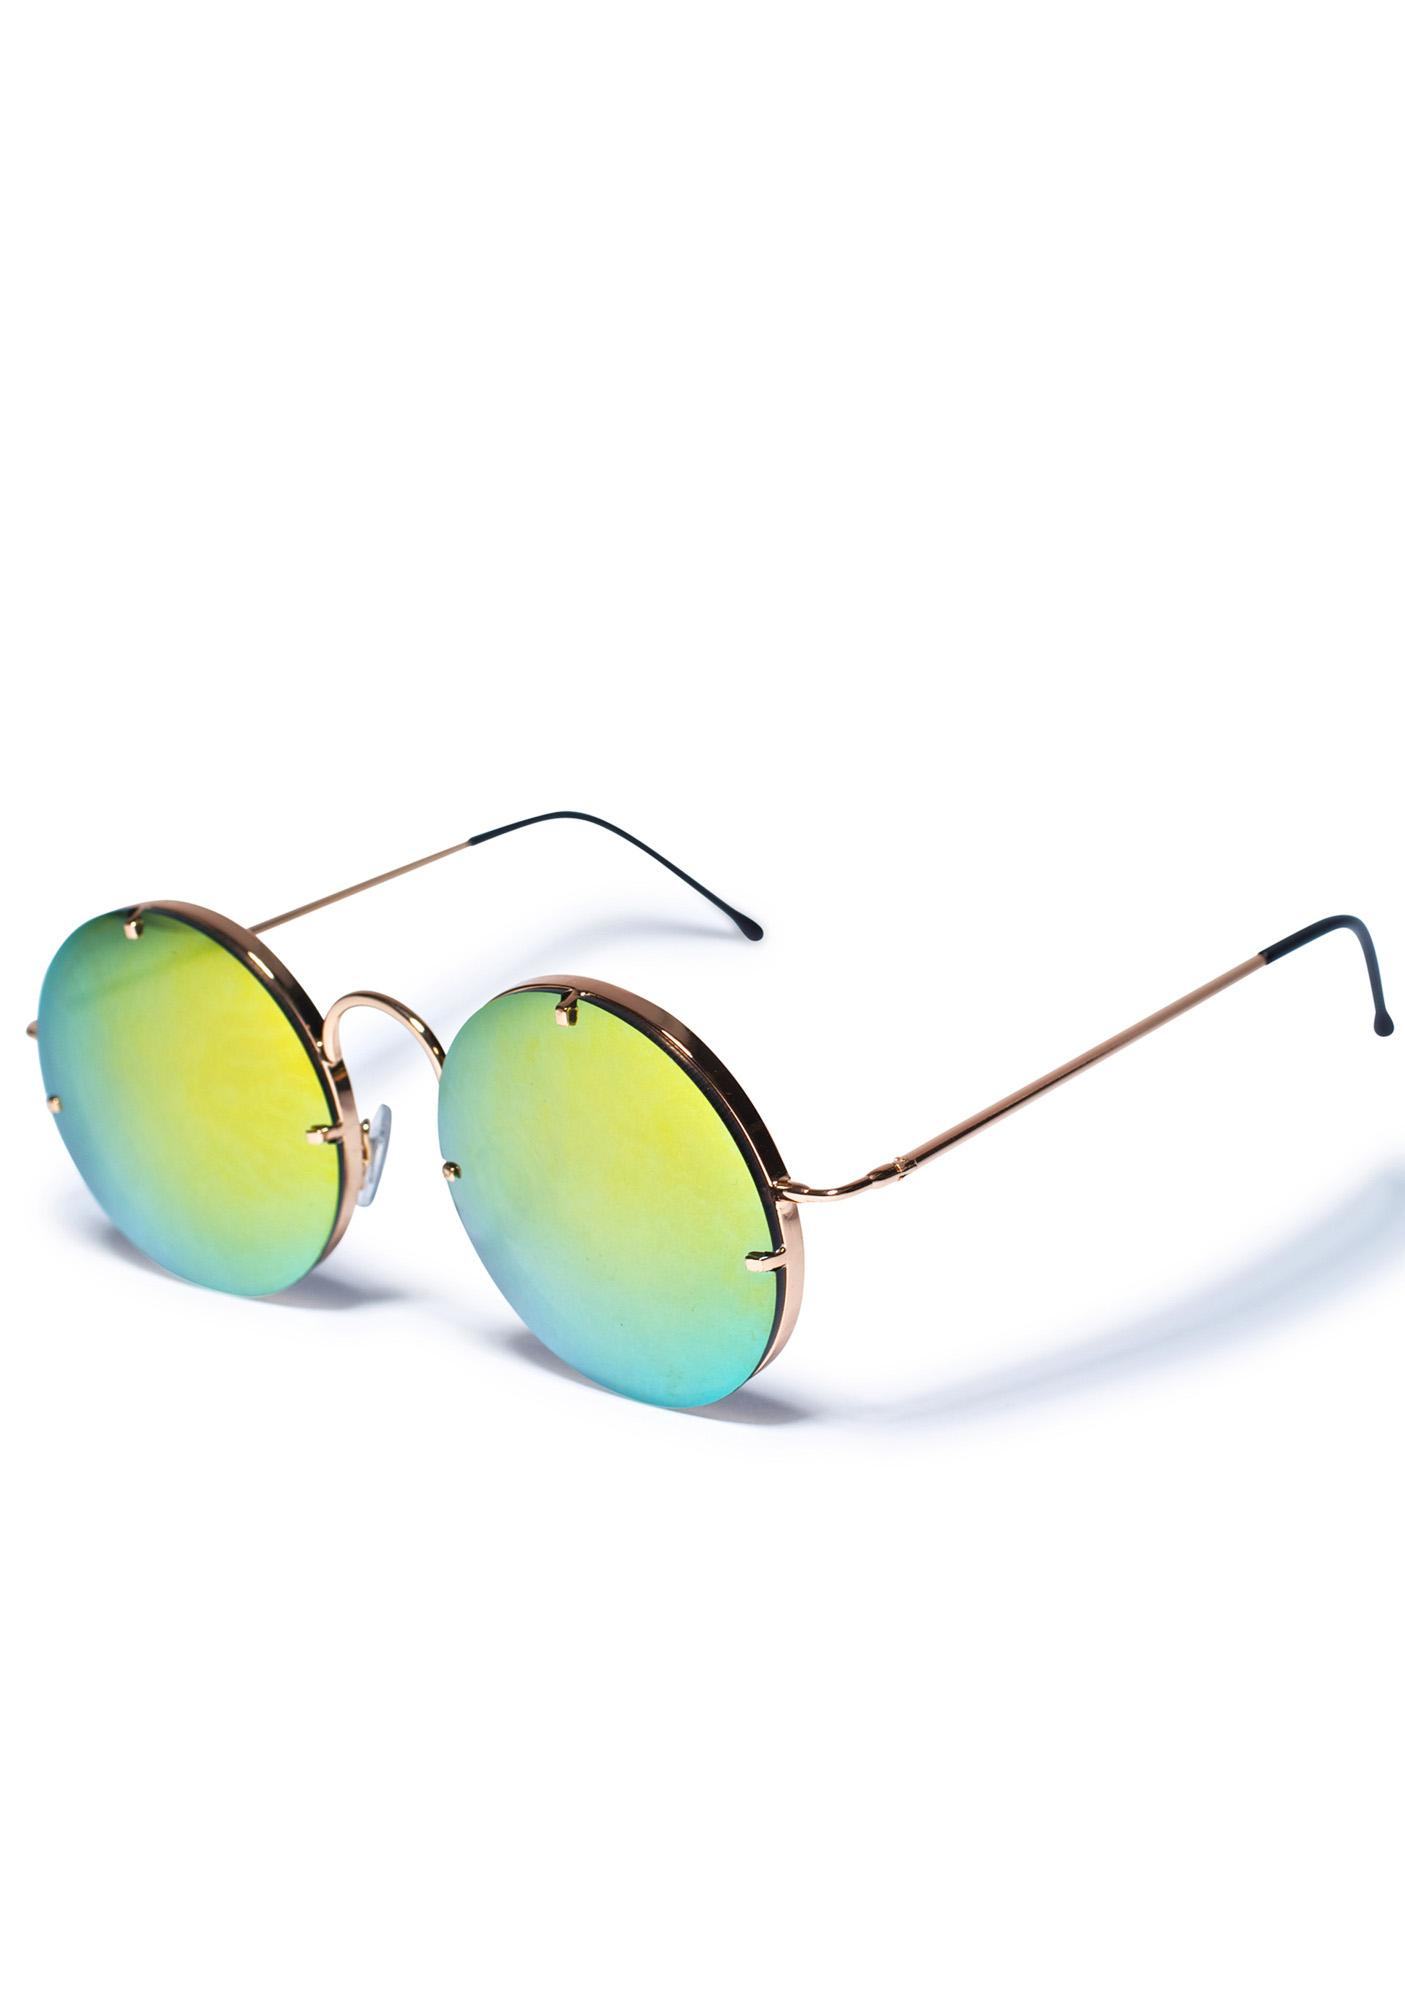 Spitfire Poolside Sunglasses